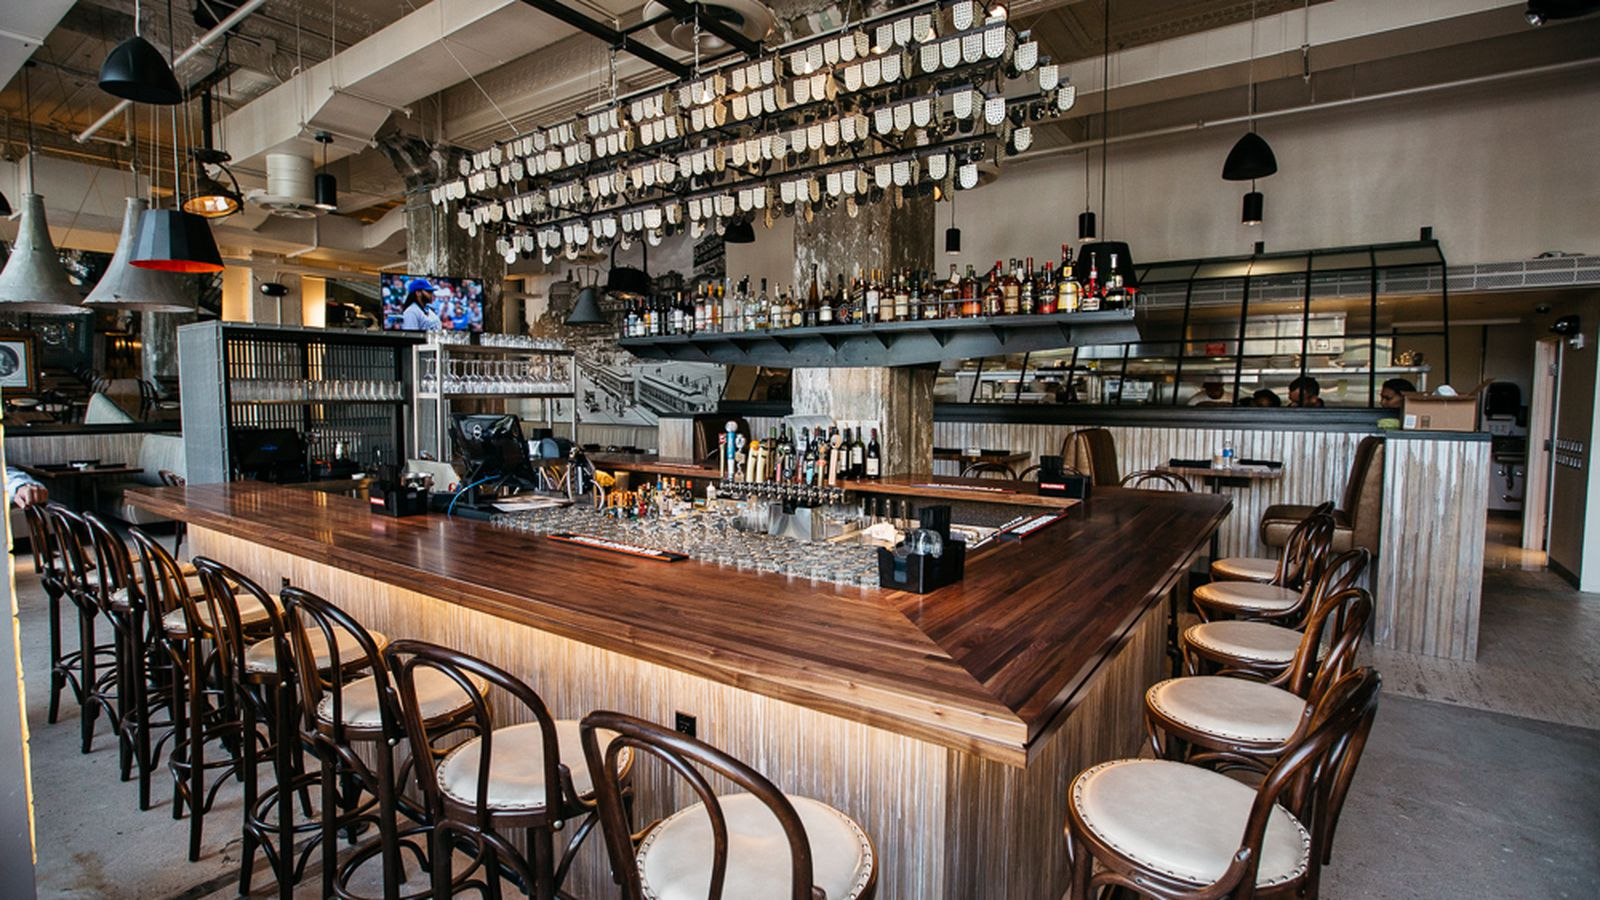 Behold Central Kitchen  Bar Downtowns Slick New Gastro